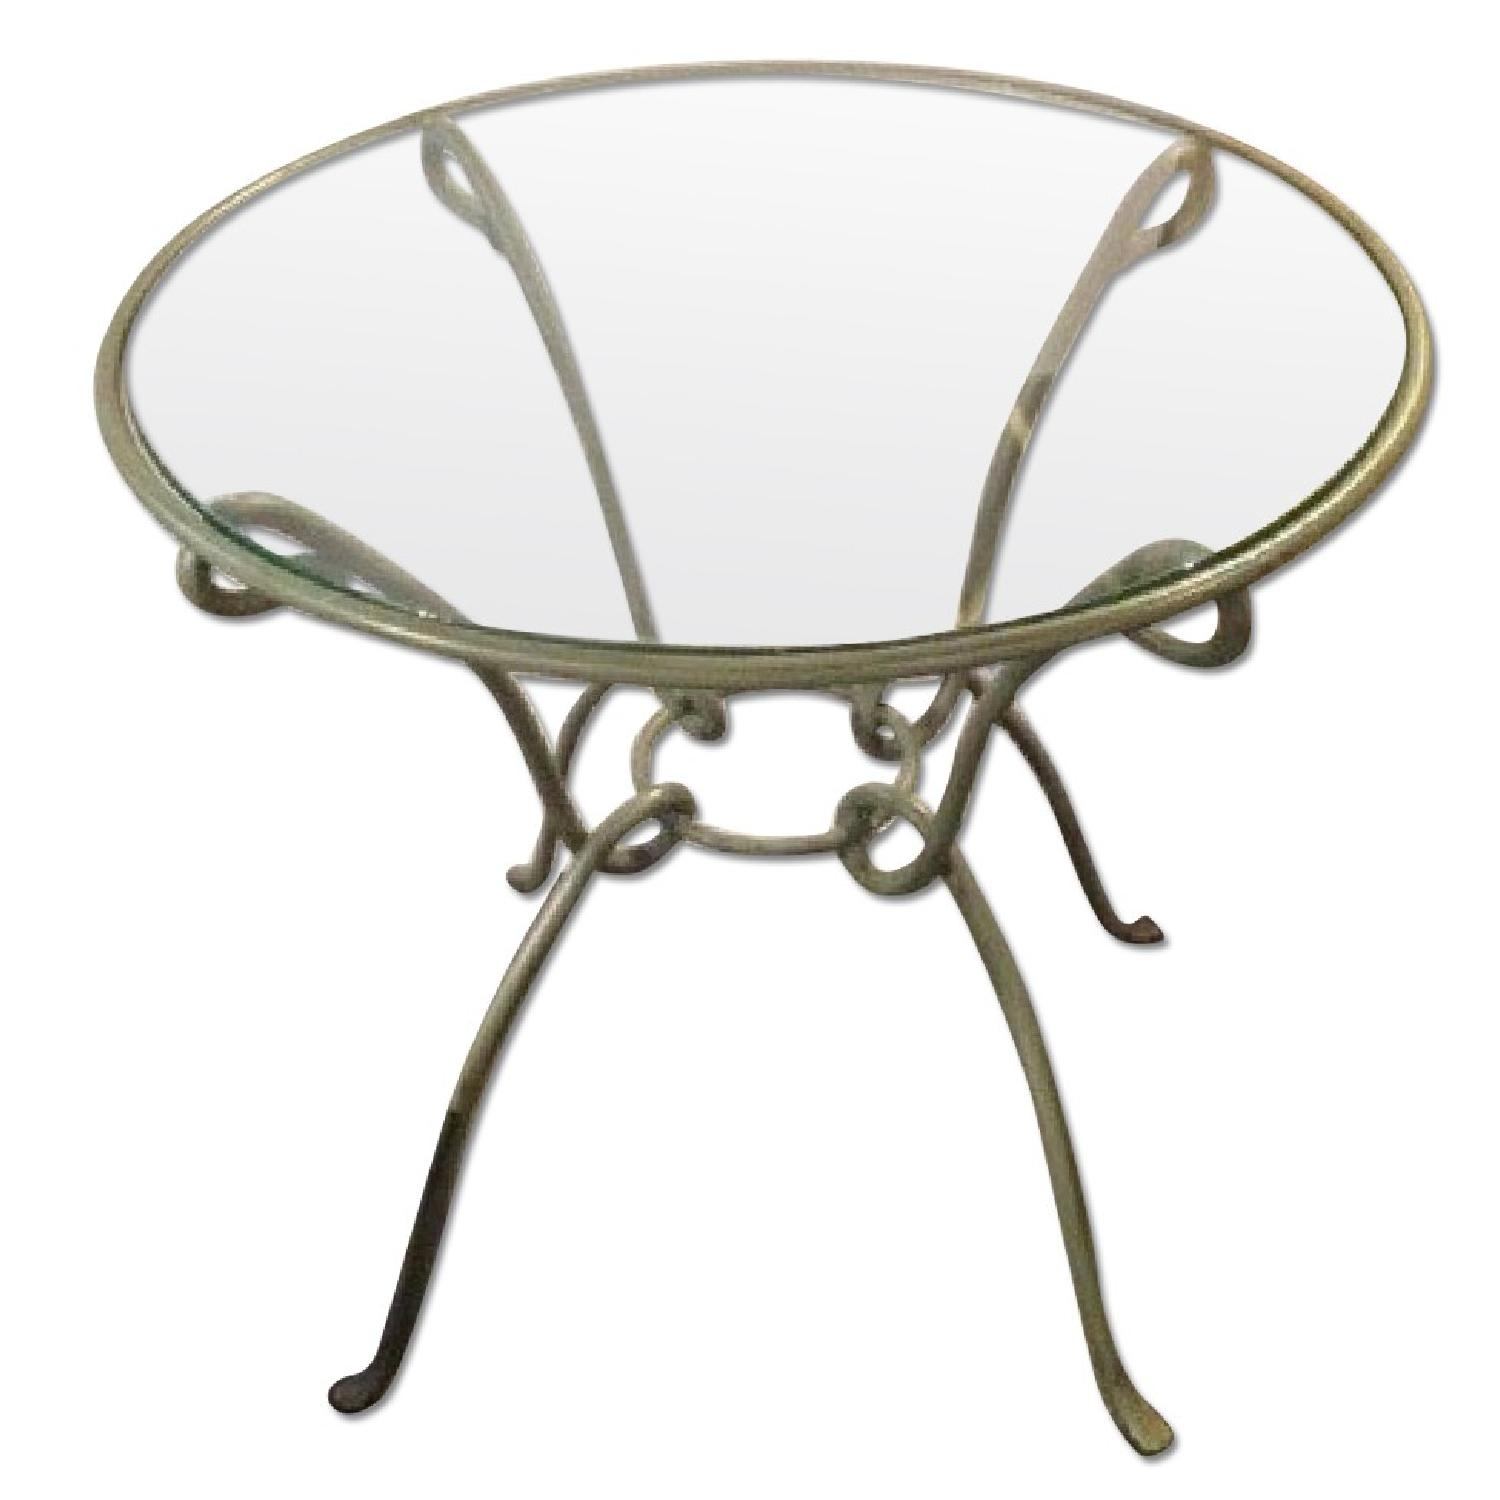 Pier 1 Round Kitchen Table w/ Metal Frame & Glass Top - image-0